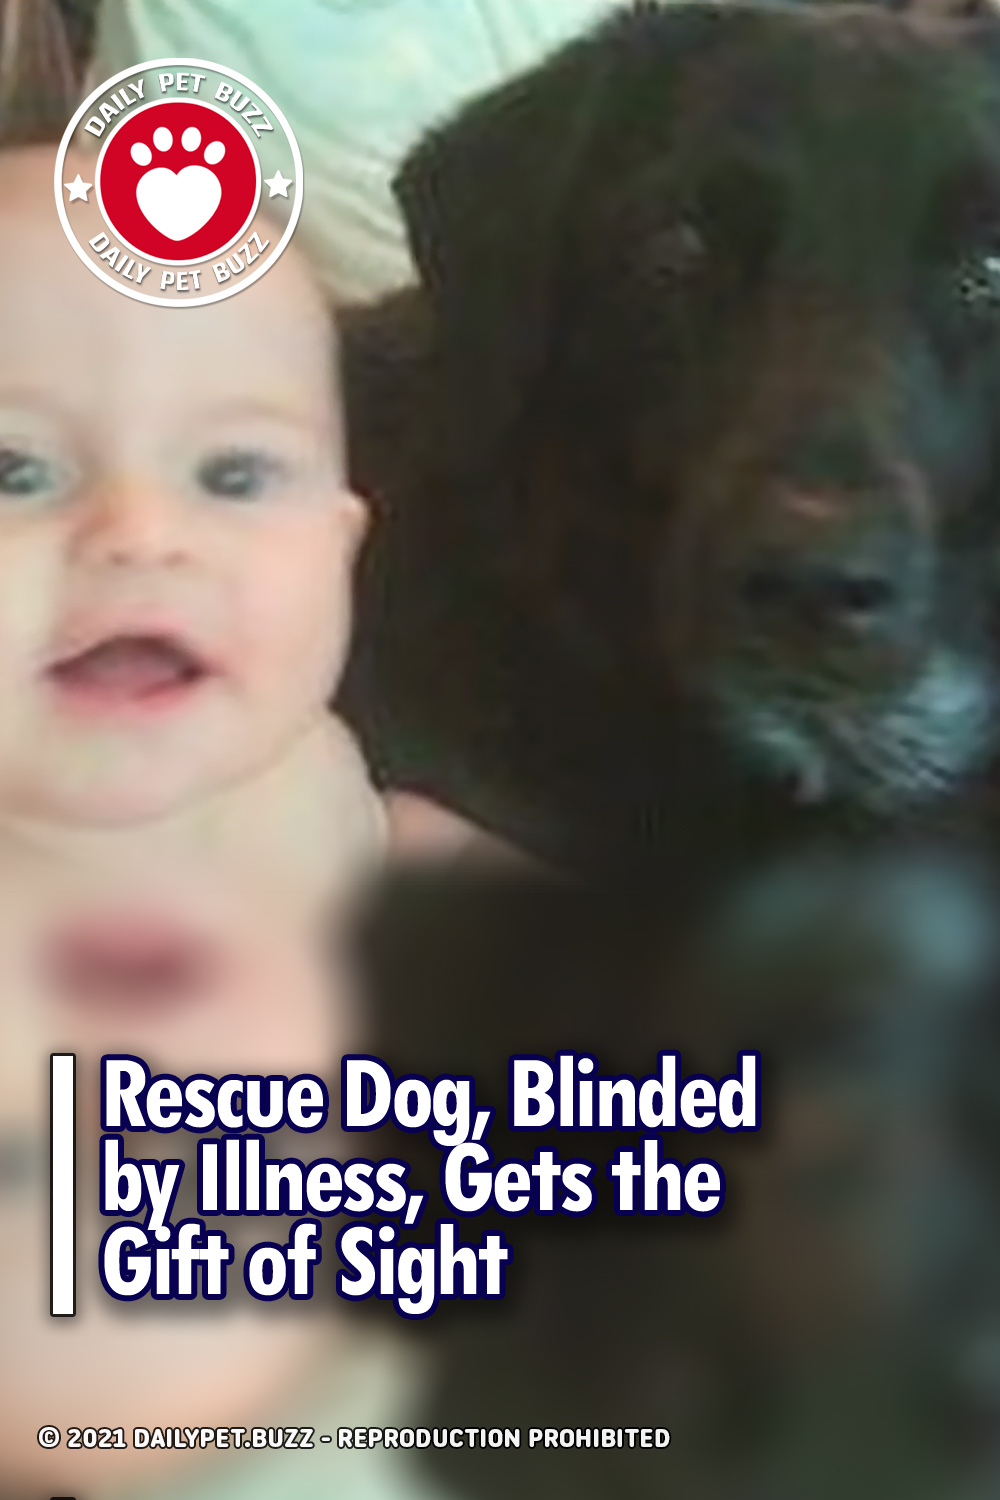 Rescue Dog, Blinded by Illness, Gets the Gift of Sight